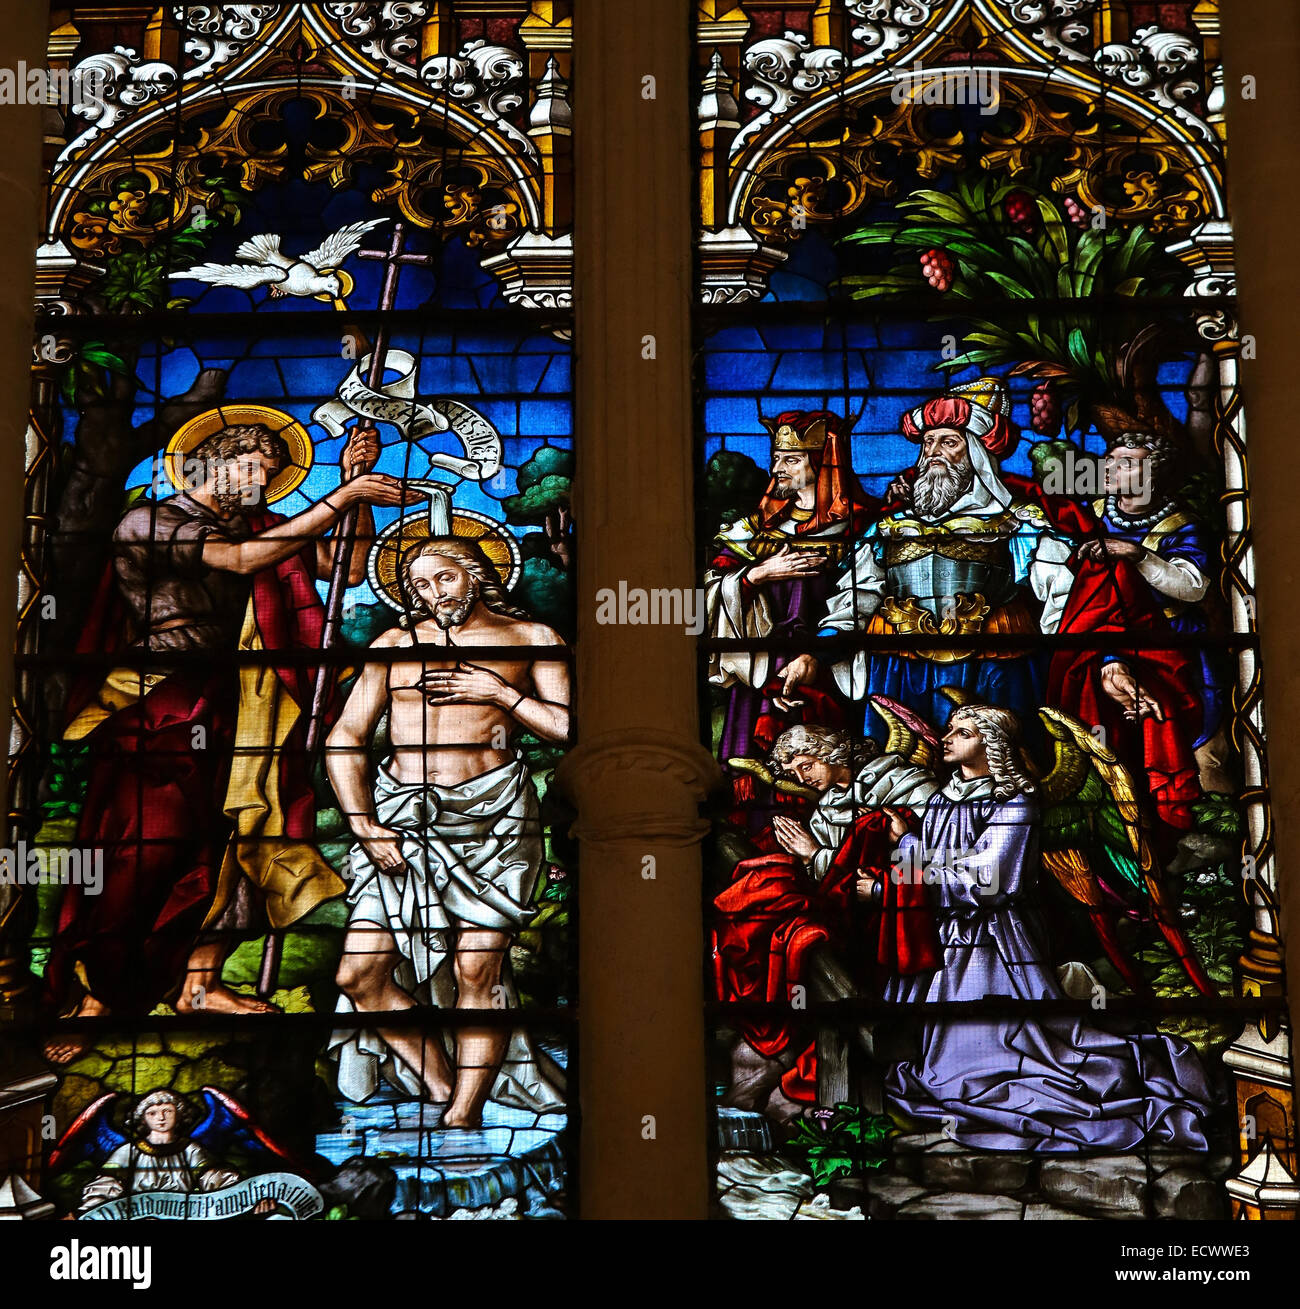 Stained glass window depicting the Baptism of Jesus by Saint John in the cathedral of Burgos - Stock Image